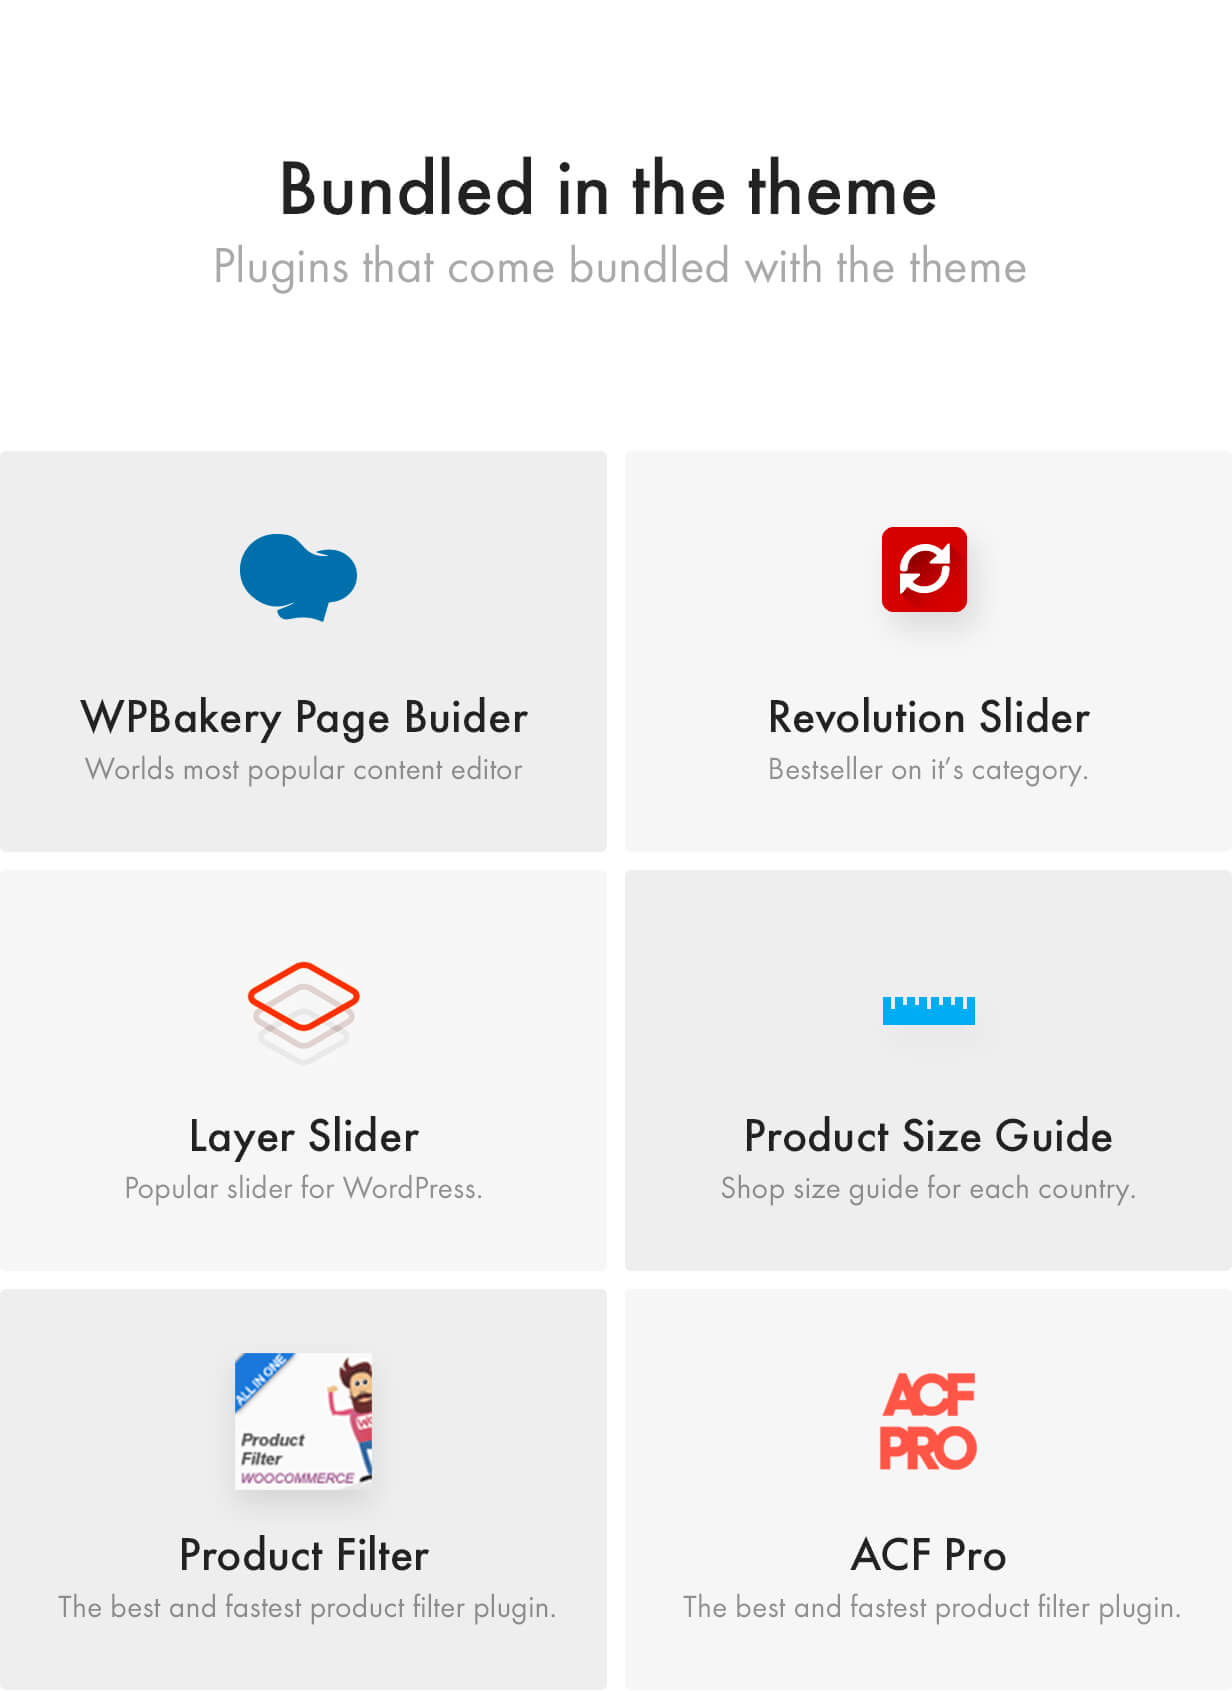 Premium Plugins included, WPBakery Page Builder, Revolution Slider, Layer Slider, Advanced Custom Fields PRO, Product Size Guide, WooCommerce Size Guide